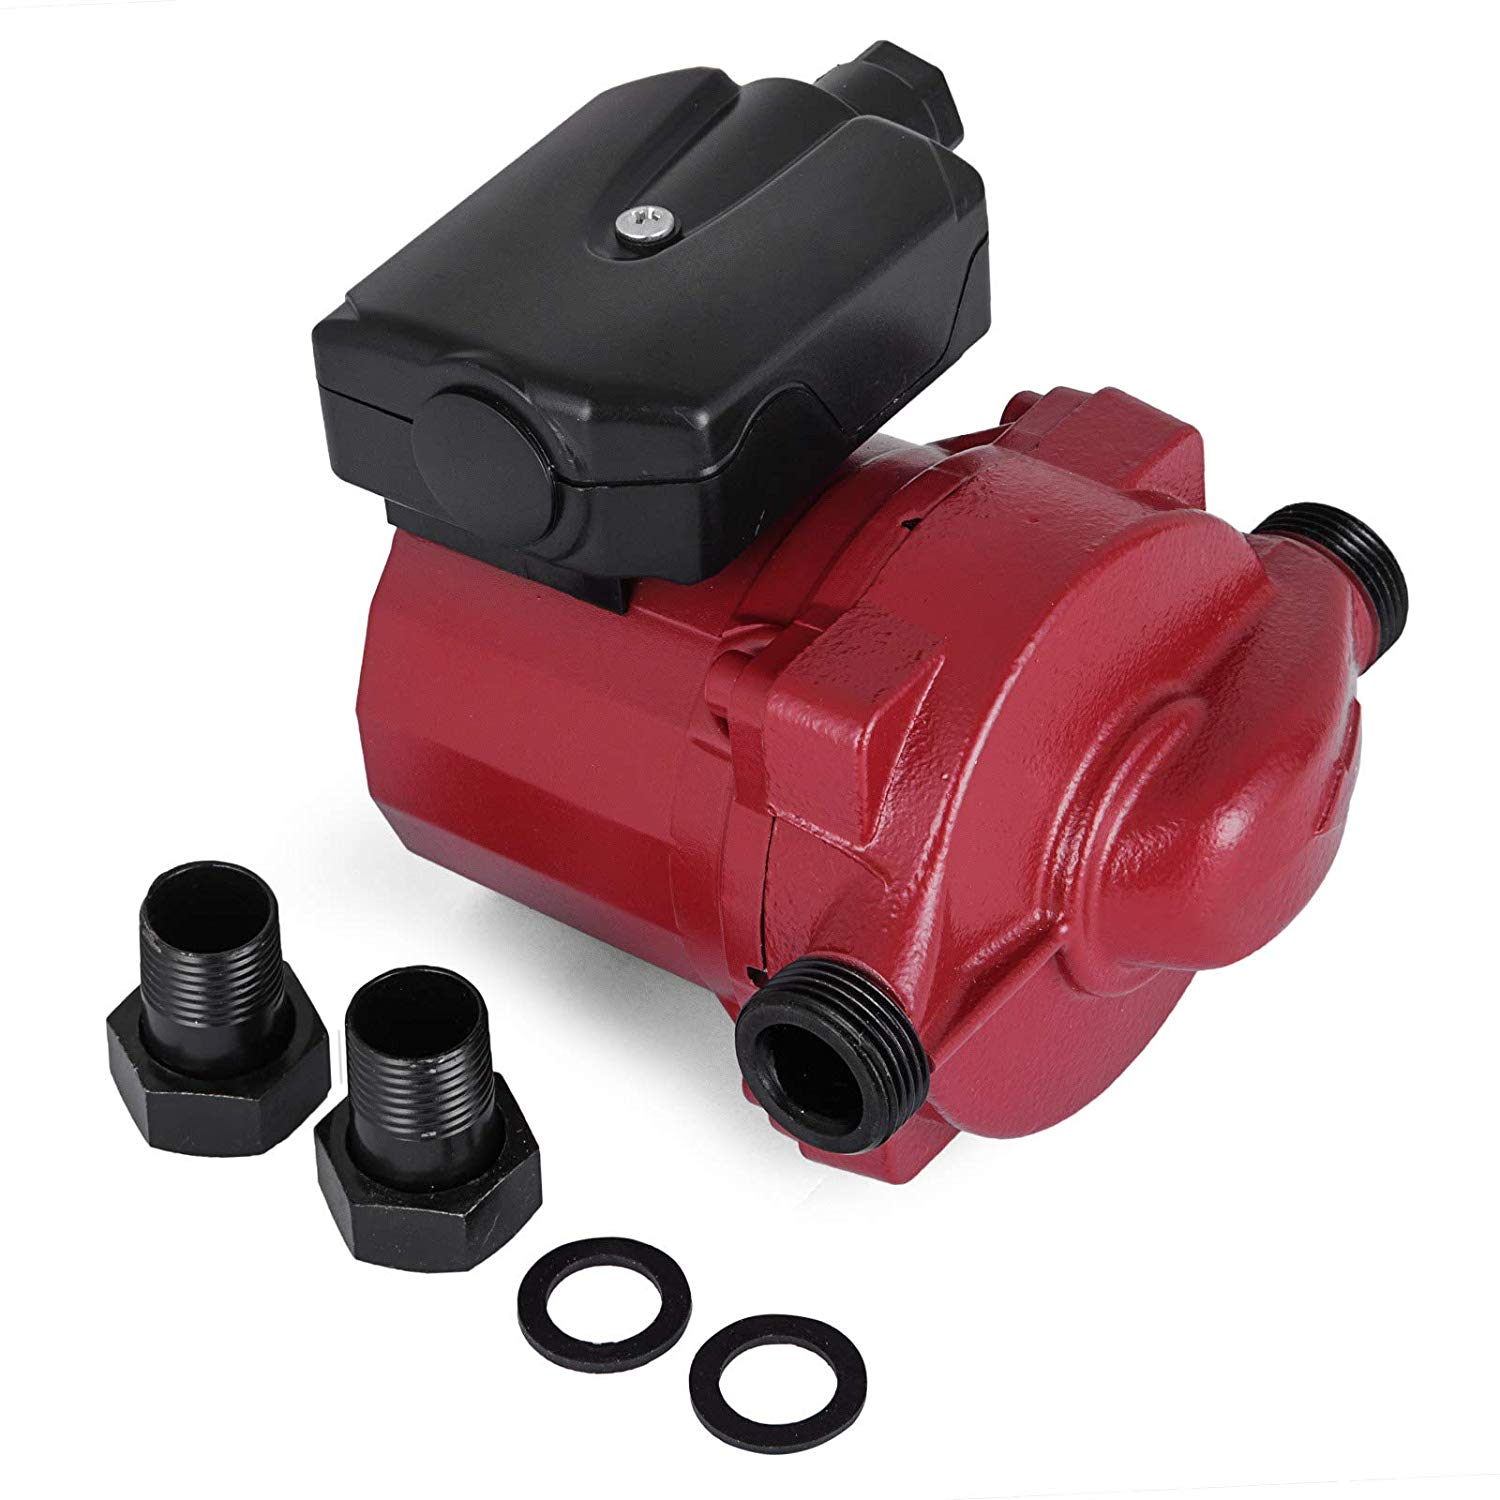 Happybuy 3/4 inch Hot Water Circulation Pump RS15-6 Hot Water Circulating Pump Red Three Speed Water Circulation Pump for Solar Heater Systems